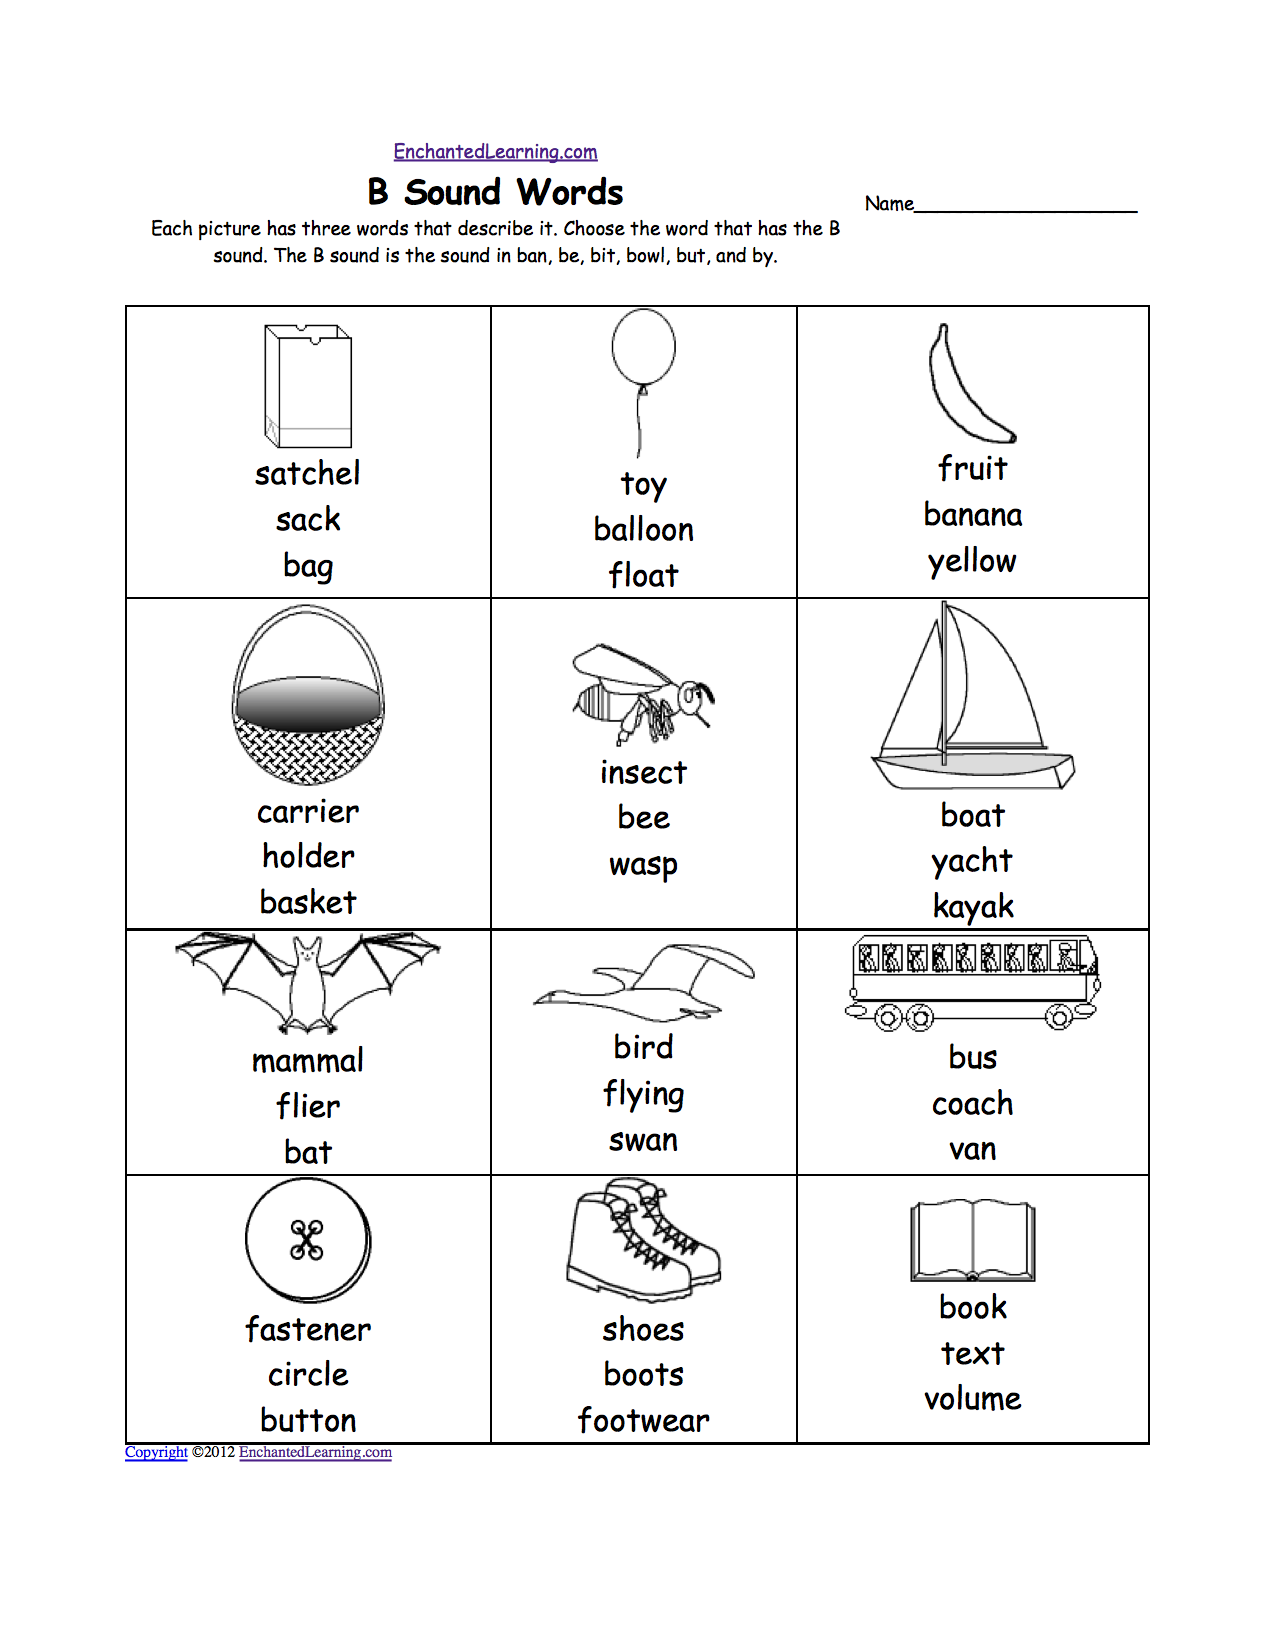 Aldiablosus  Gorgeous Phonics Worksheets Multiple Choice Worksheets To Print  With Luxury Quotbquot Sound Phonics Worksheet Multiple Choice Each Picture Has Three Words That Describe It Choose The Word That Has A Quotbquot Sound The Quotbquot Sound Is The Sound  With Astonishing Grade Six English Worksheets Also Adverbs In Sentences Worksheet In Addition Worksheet For Grade  And Time Worksheet Ks As Well As Multiplication Worksheets Year  Additionally Adjectives Exercises Worksheets From Enchantedlearningcom With Aldiablosus  Luxury Phonics Worksheets Multiple Choice Worksheets To Print  With Astonishing Quotbquot Sound Phonics Worksheet Multiple Choice Each Picture Has Three Words That Describe It Choose The Word That Has A Quotbquot Sound The Quotbquot Sound Is The Sound  And Gorgeous Grade Six English Worksheets Also Adverbs In Sentences Worksheet In Addition Worksheet For Grade  From Enchantedlearningcom